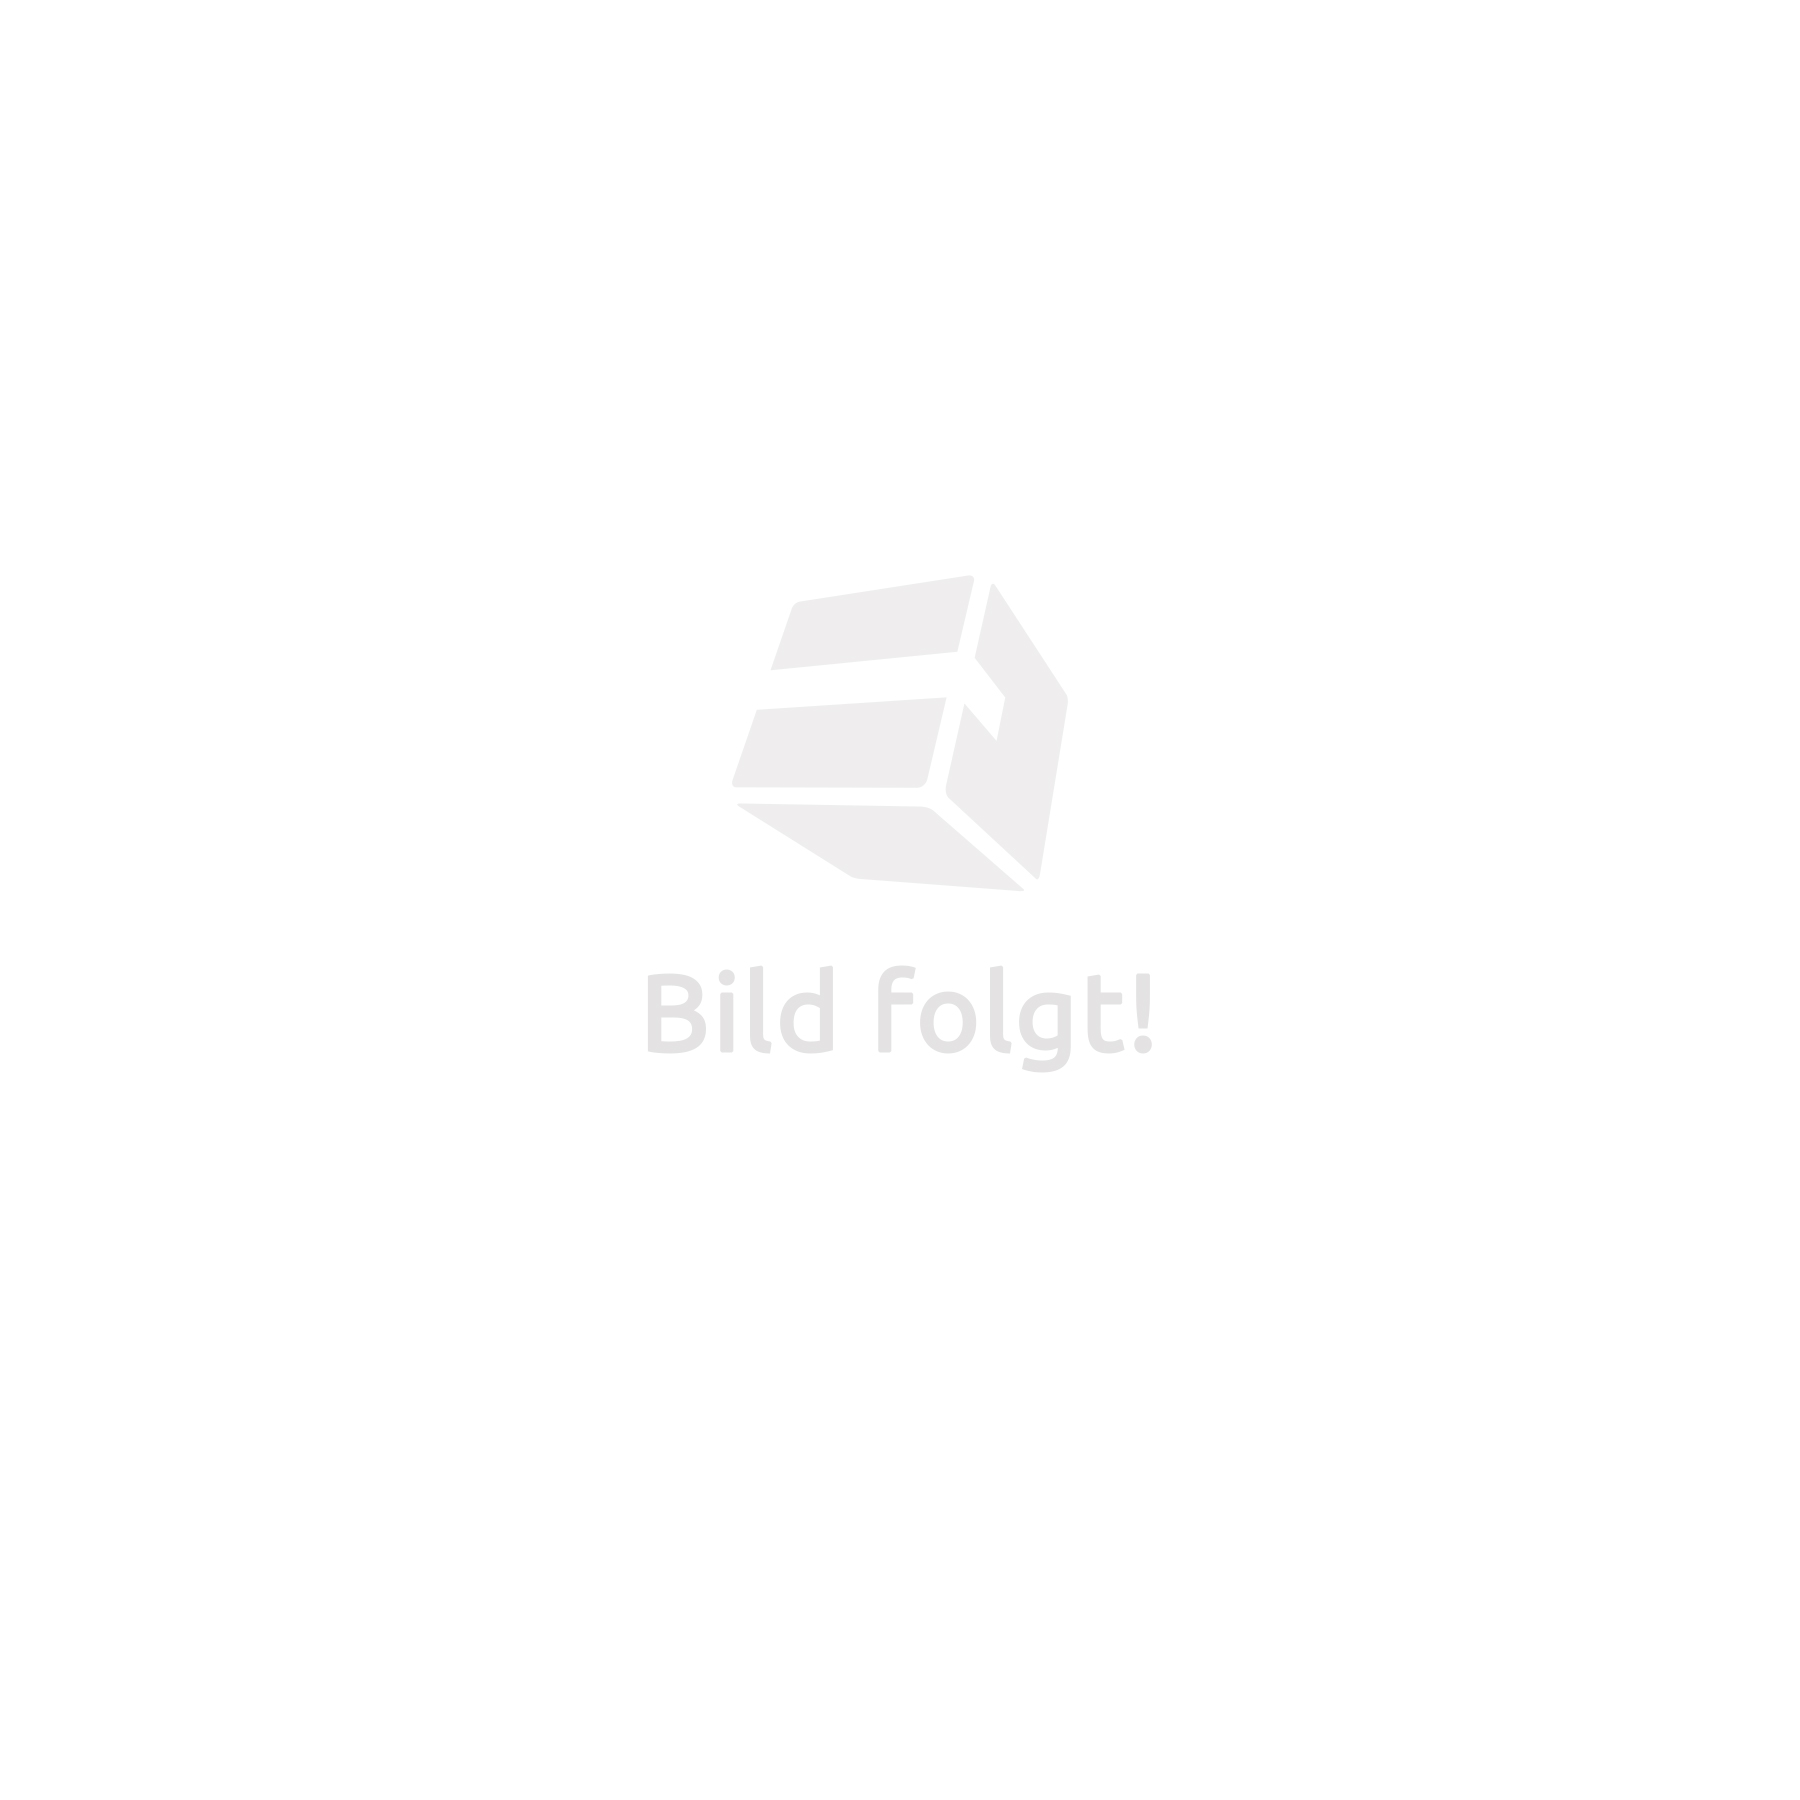 chaise longue bain de soleil en aluminium poly rotin. Black Bedroom Furniture Sets. Home Design Ideas